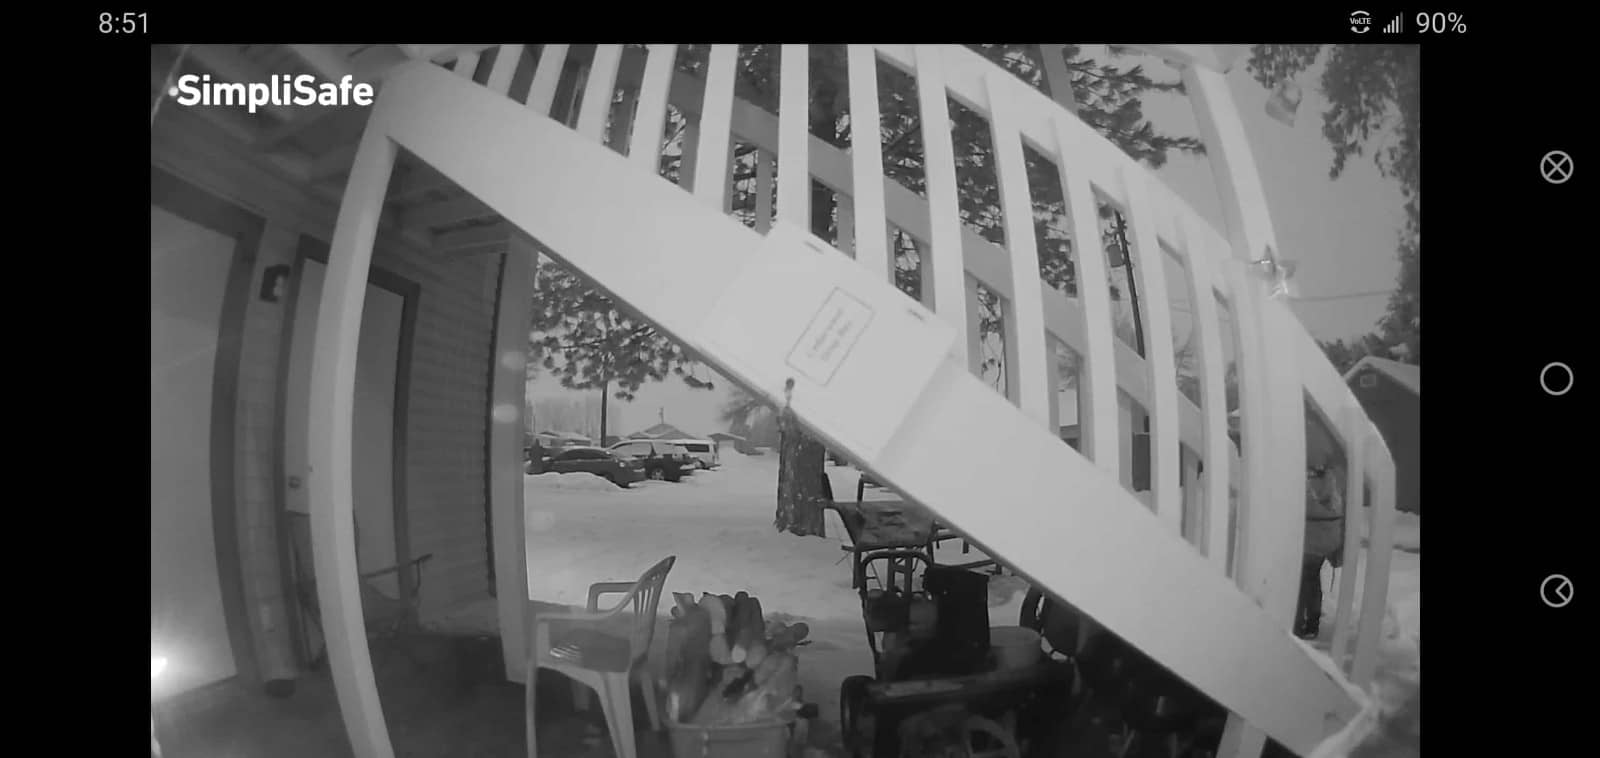 SimpliSafeReview Porch Footage Night 01